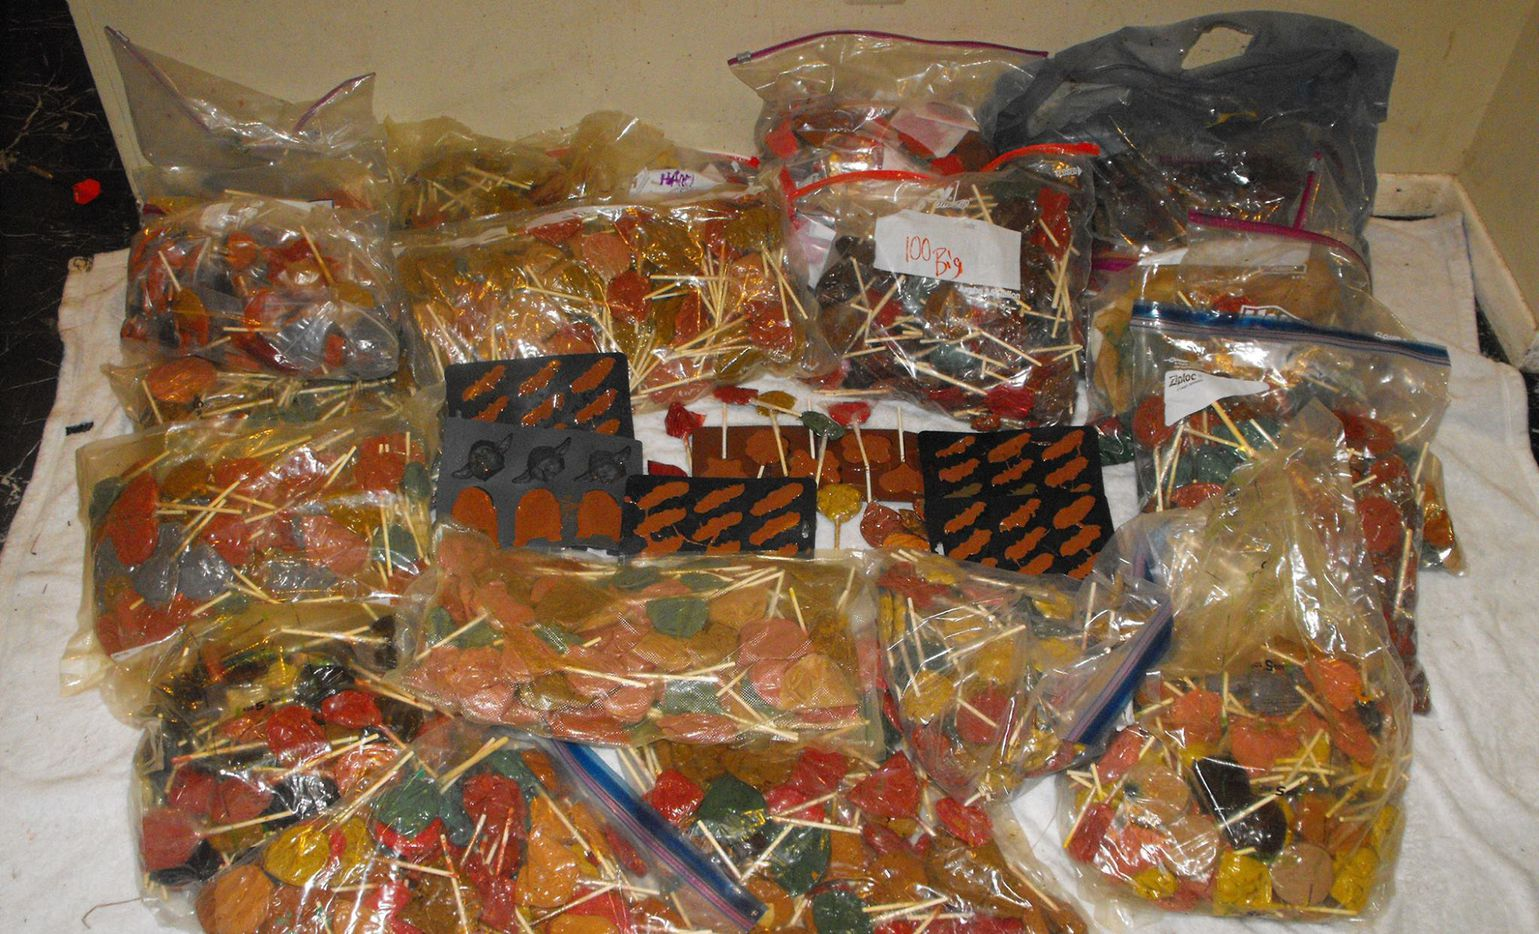 Nearly $1 million worth of meth lollipops were found in a home in Spring, near Houston on Tuesday. The meth pops were shaped like butterflies, flowers, bats and various characters. Officials believe they were made to entice children.